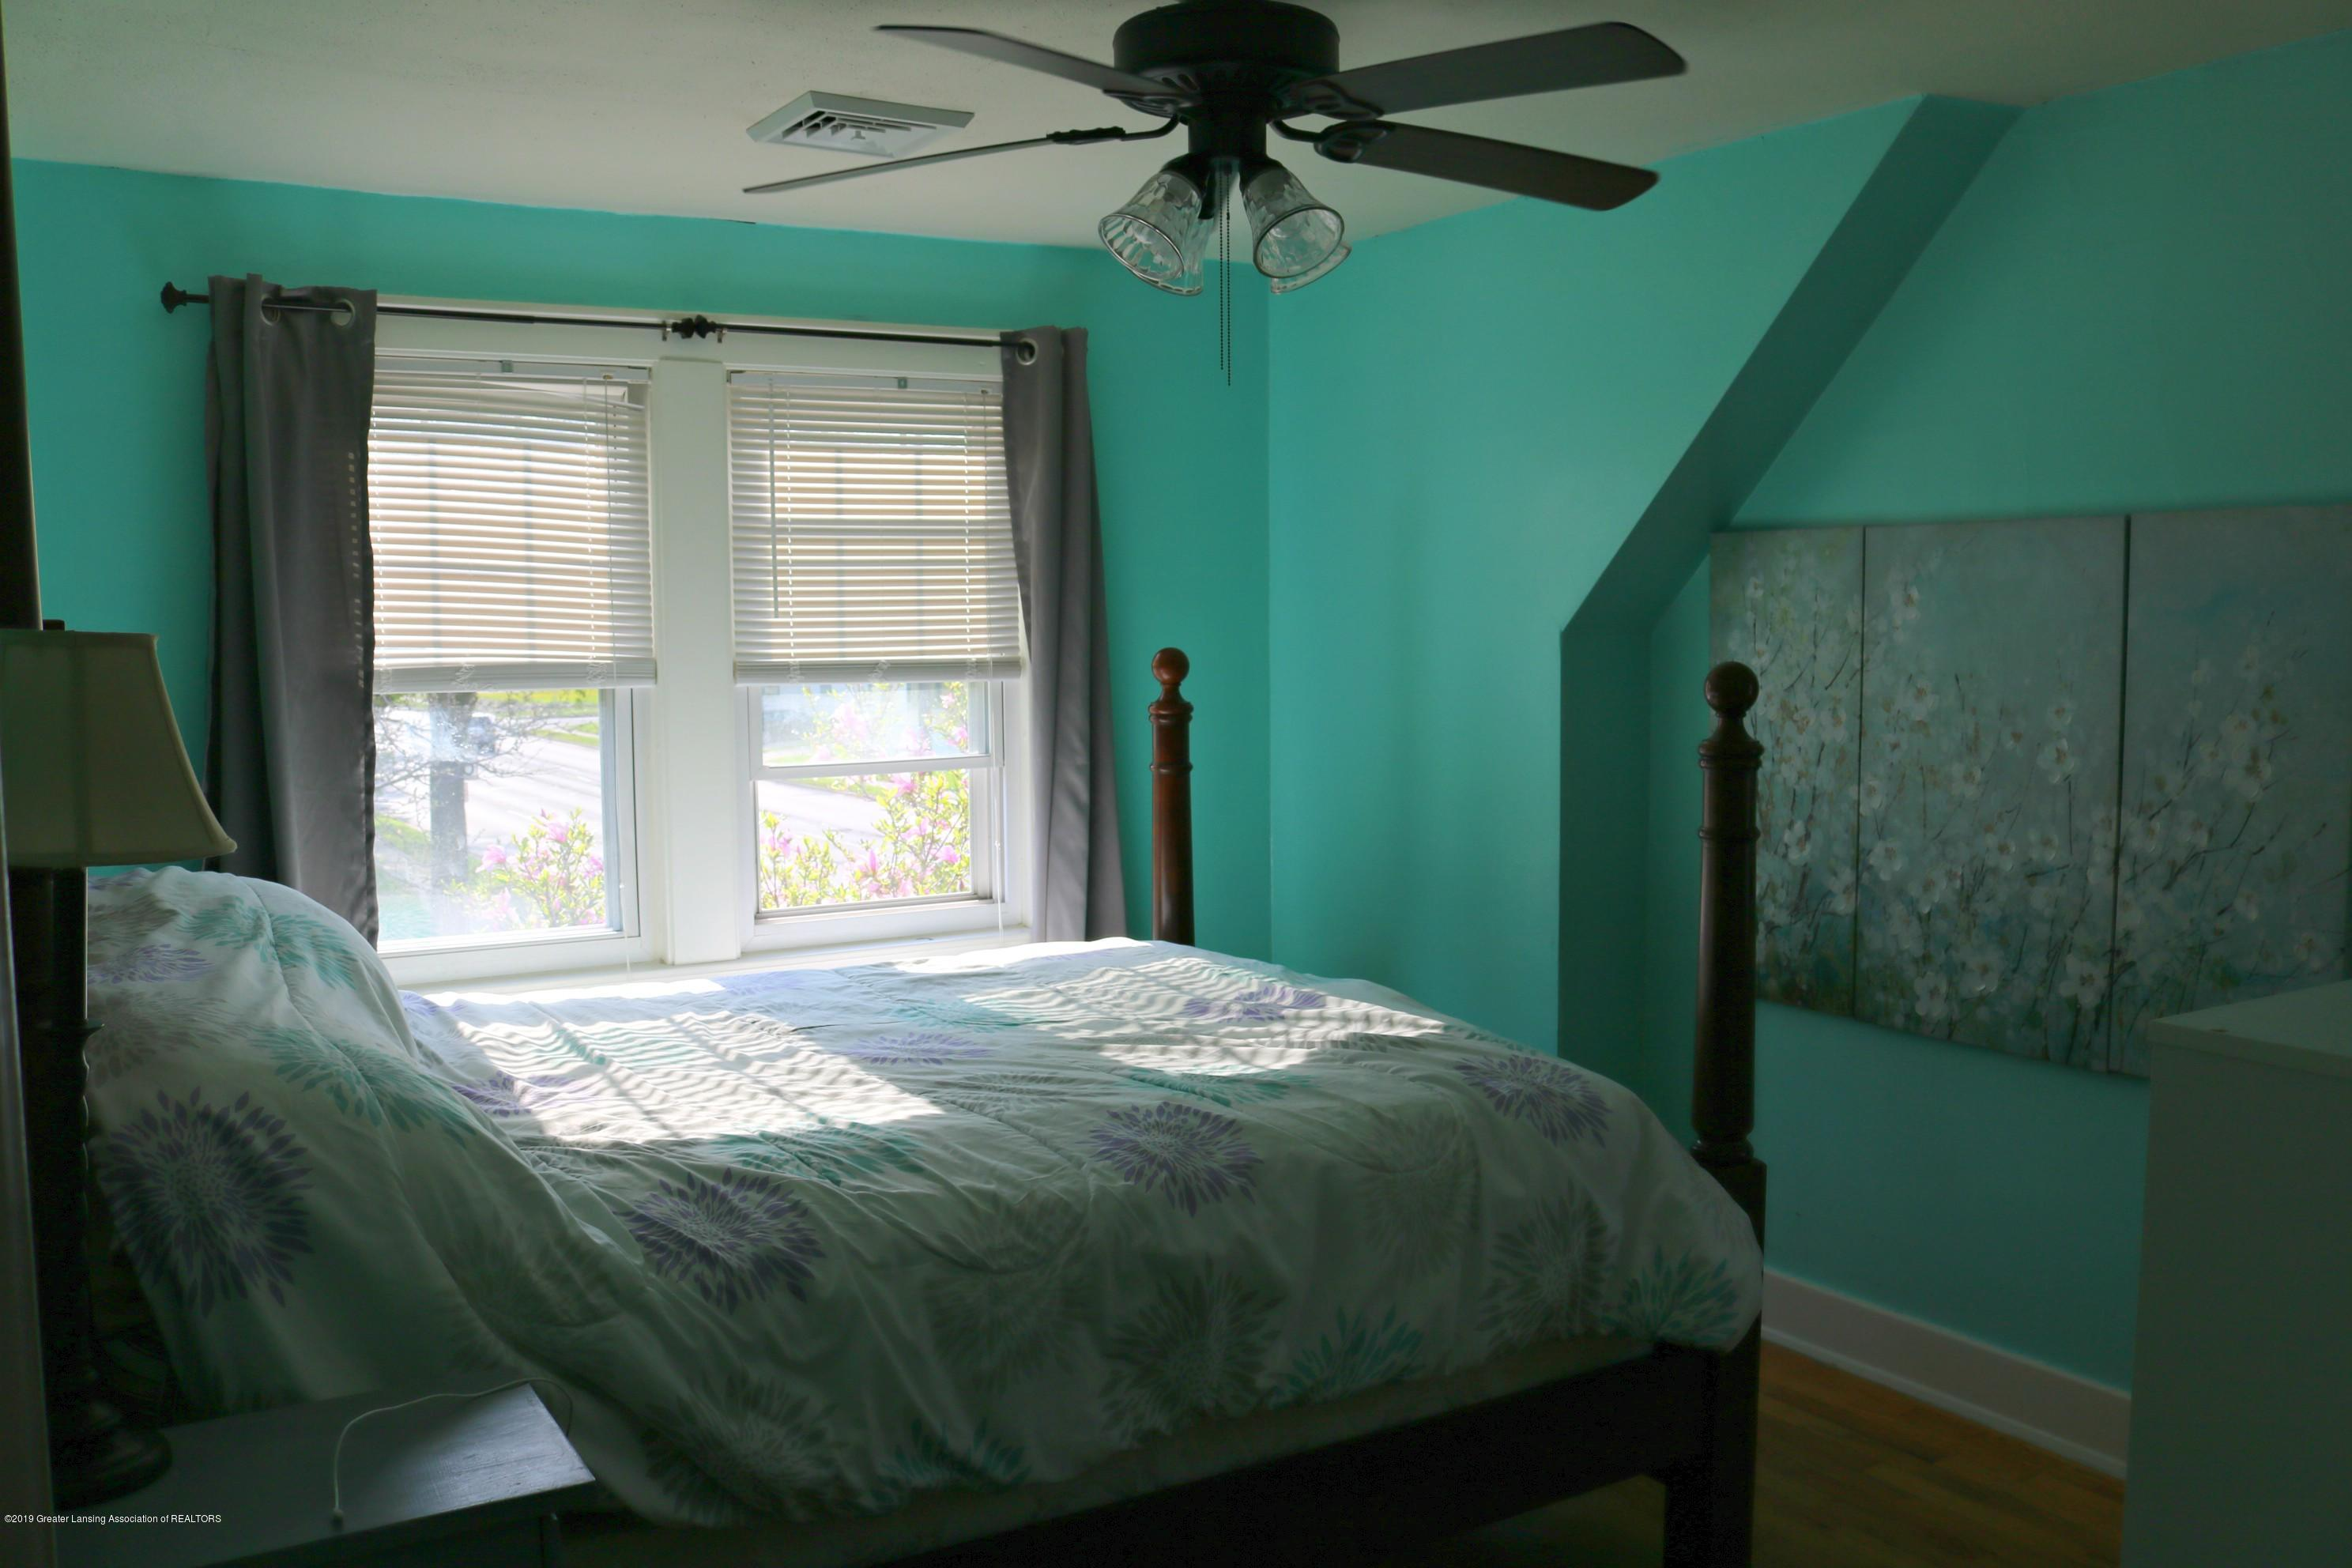 703 N Magnolia Ave - Bedroom 2 - 11